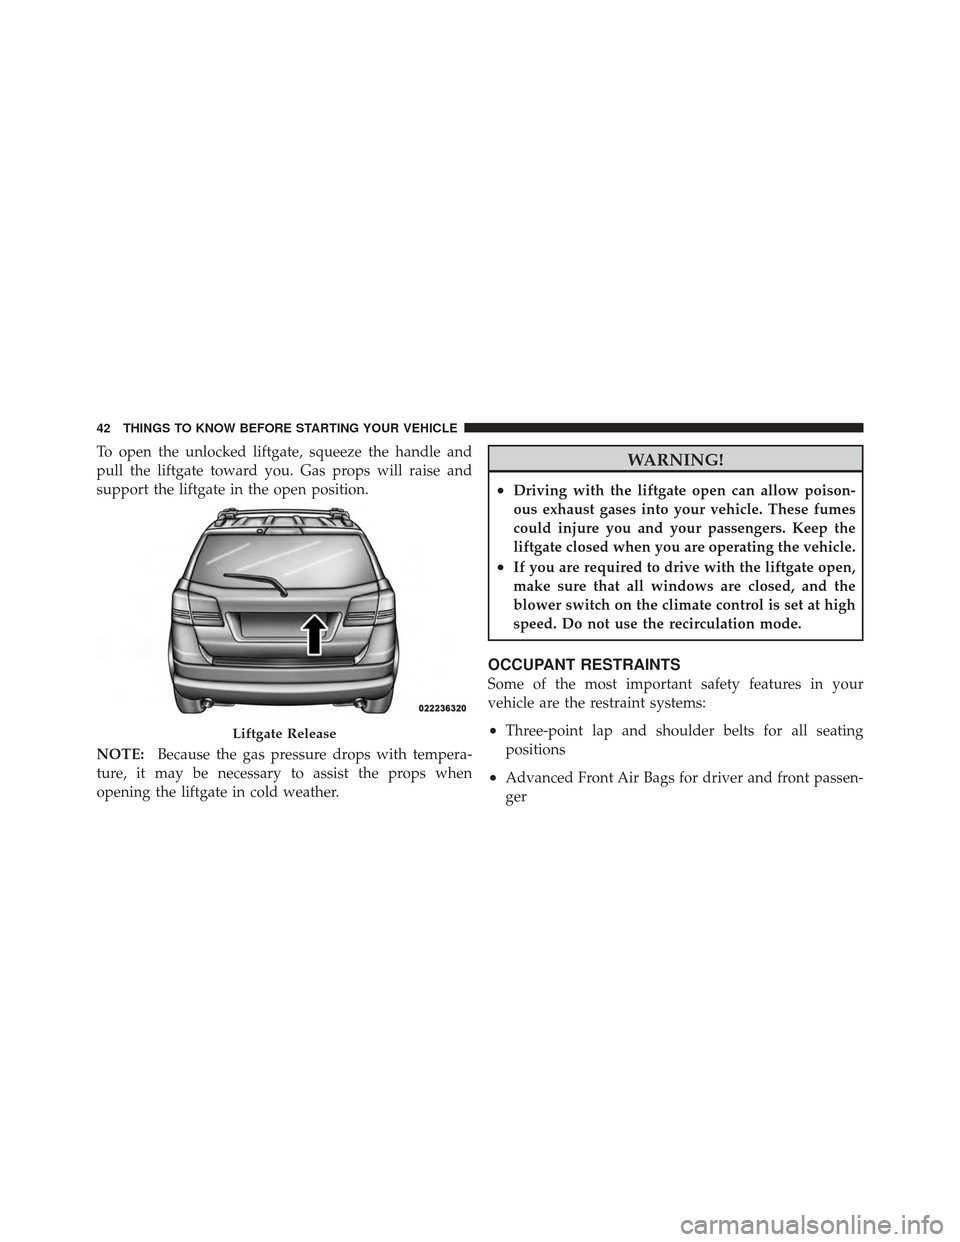 DODGE JOURNEY 2011 1.G Service Manual To open the unlocked liftgate, squeeze the handle and pull the liftgate toward you. Gas props will raise and support the liftgate in the open position. NOTE:Because the gas pressure drops with tempera